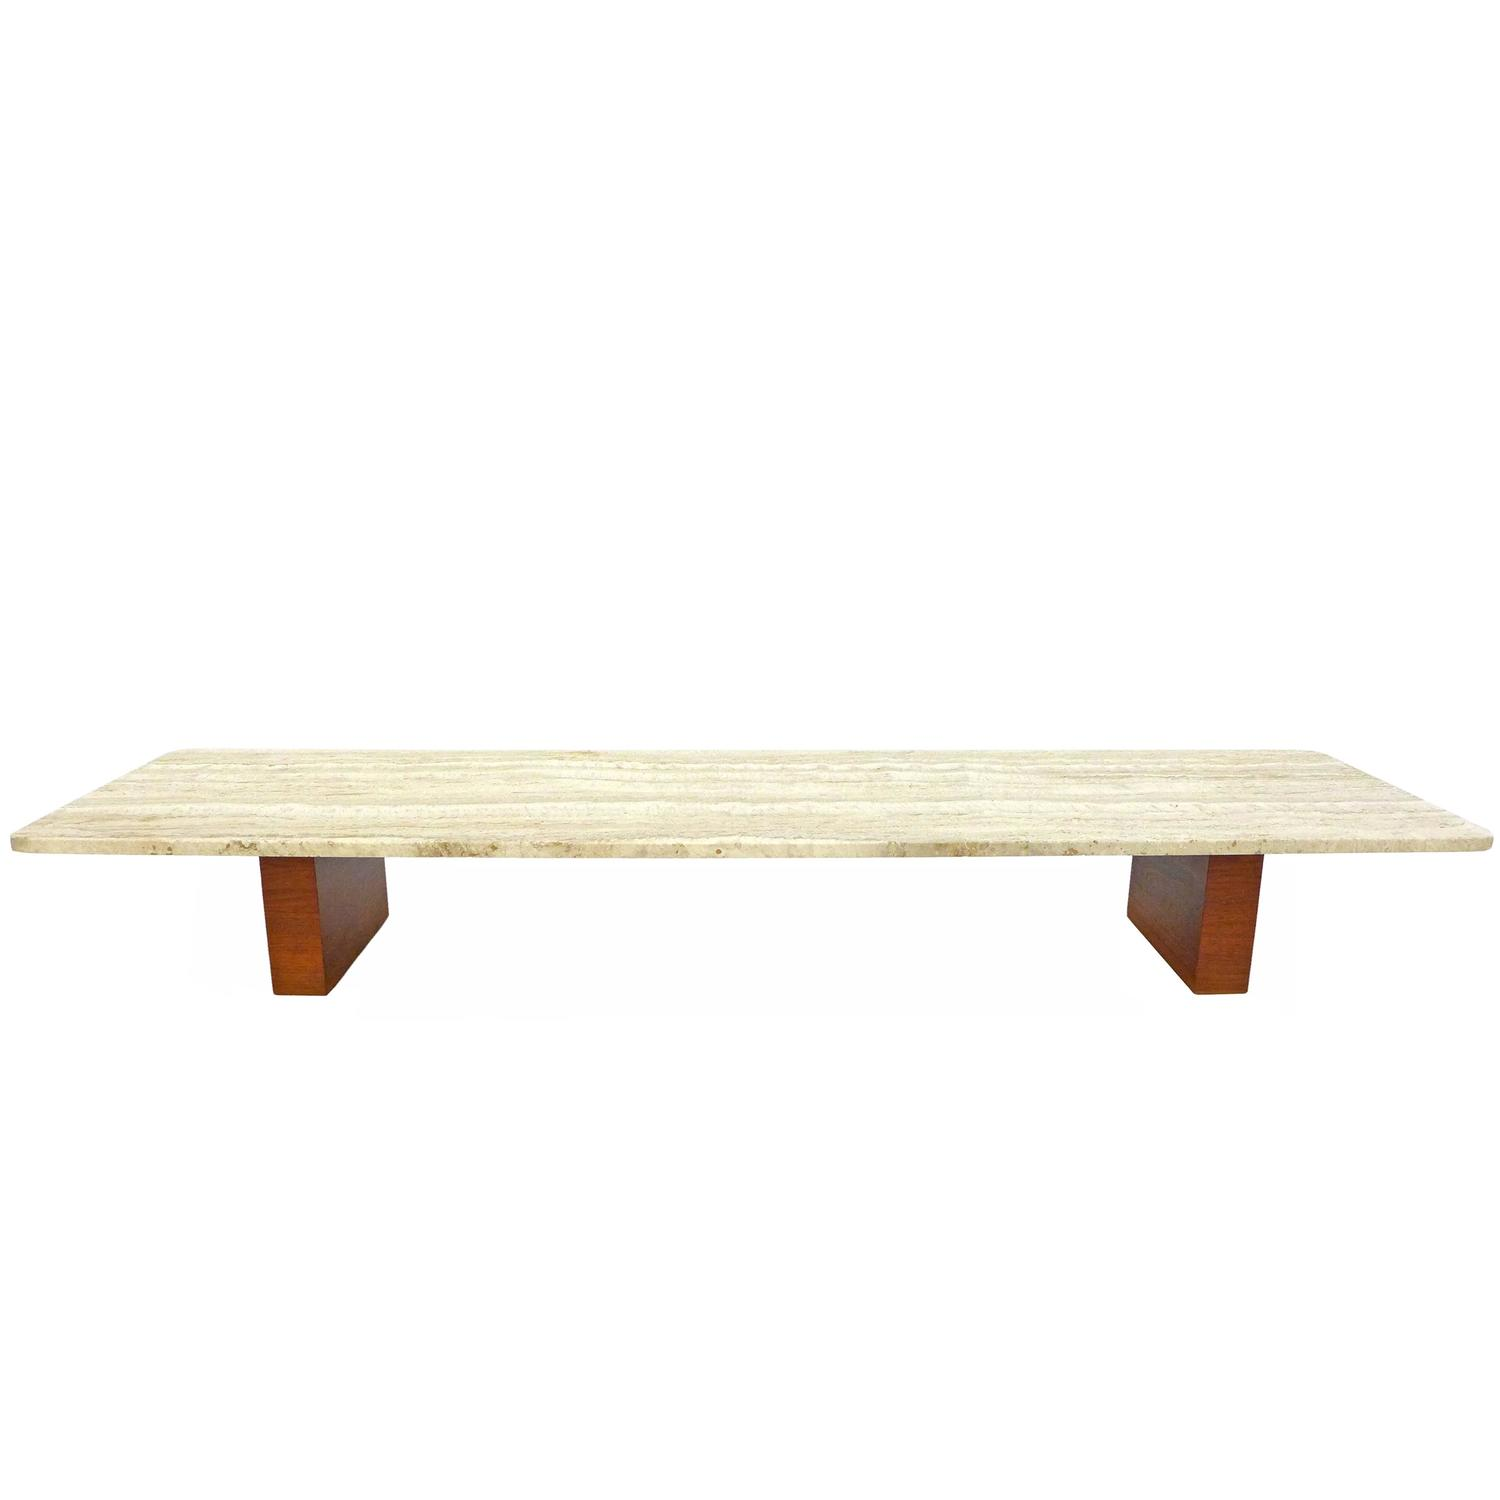 Low Travertine And Wood Coffee Table At 1stdibs